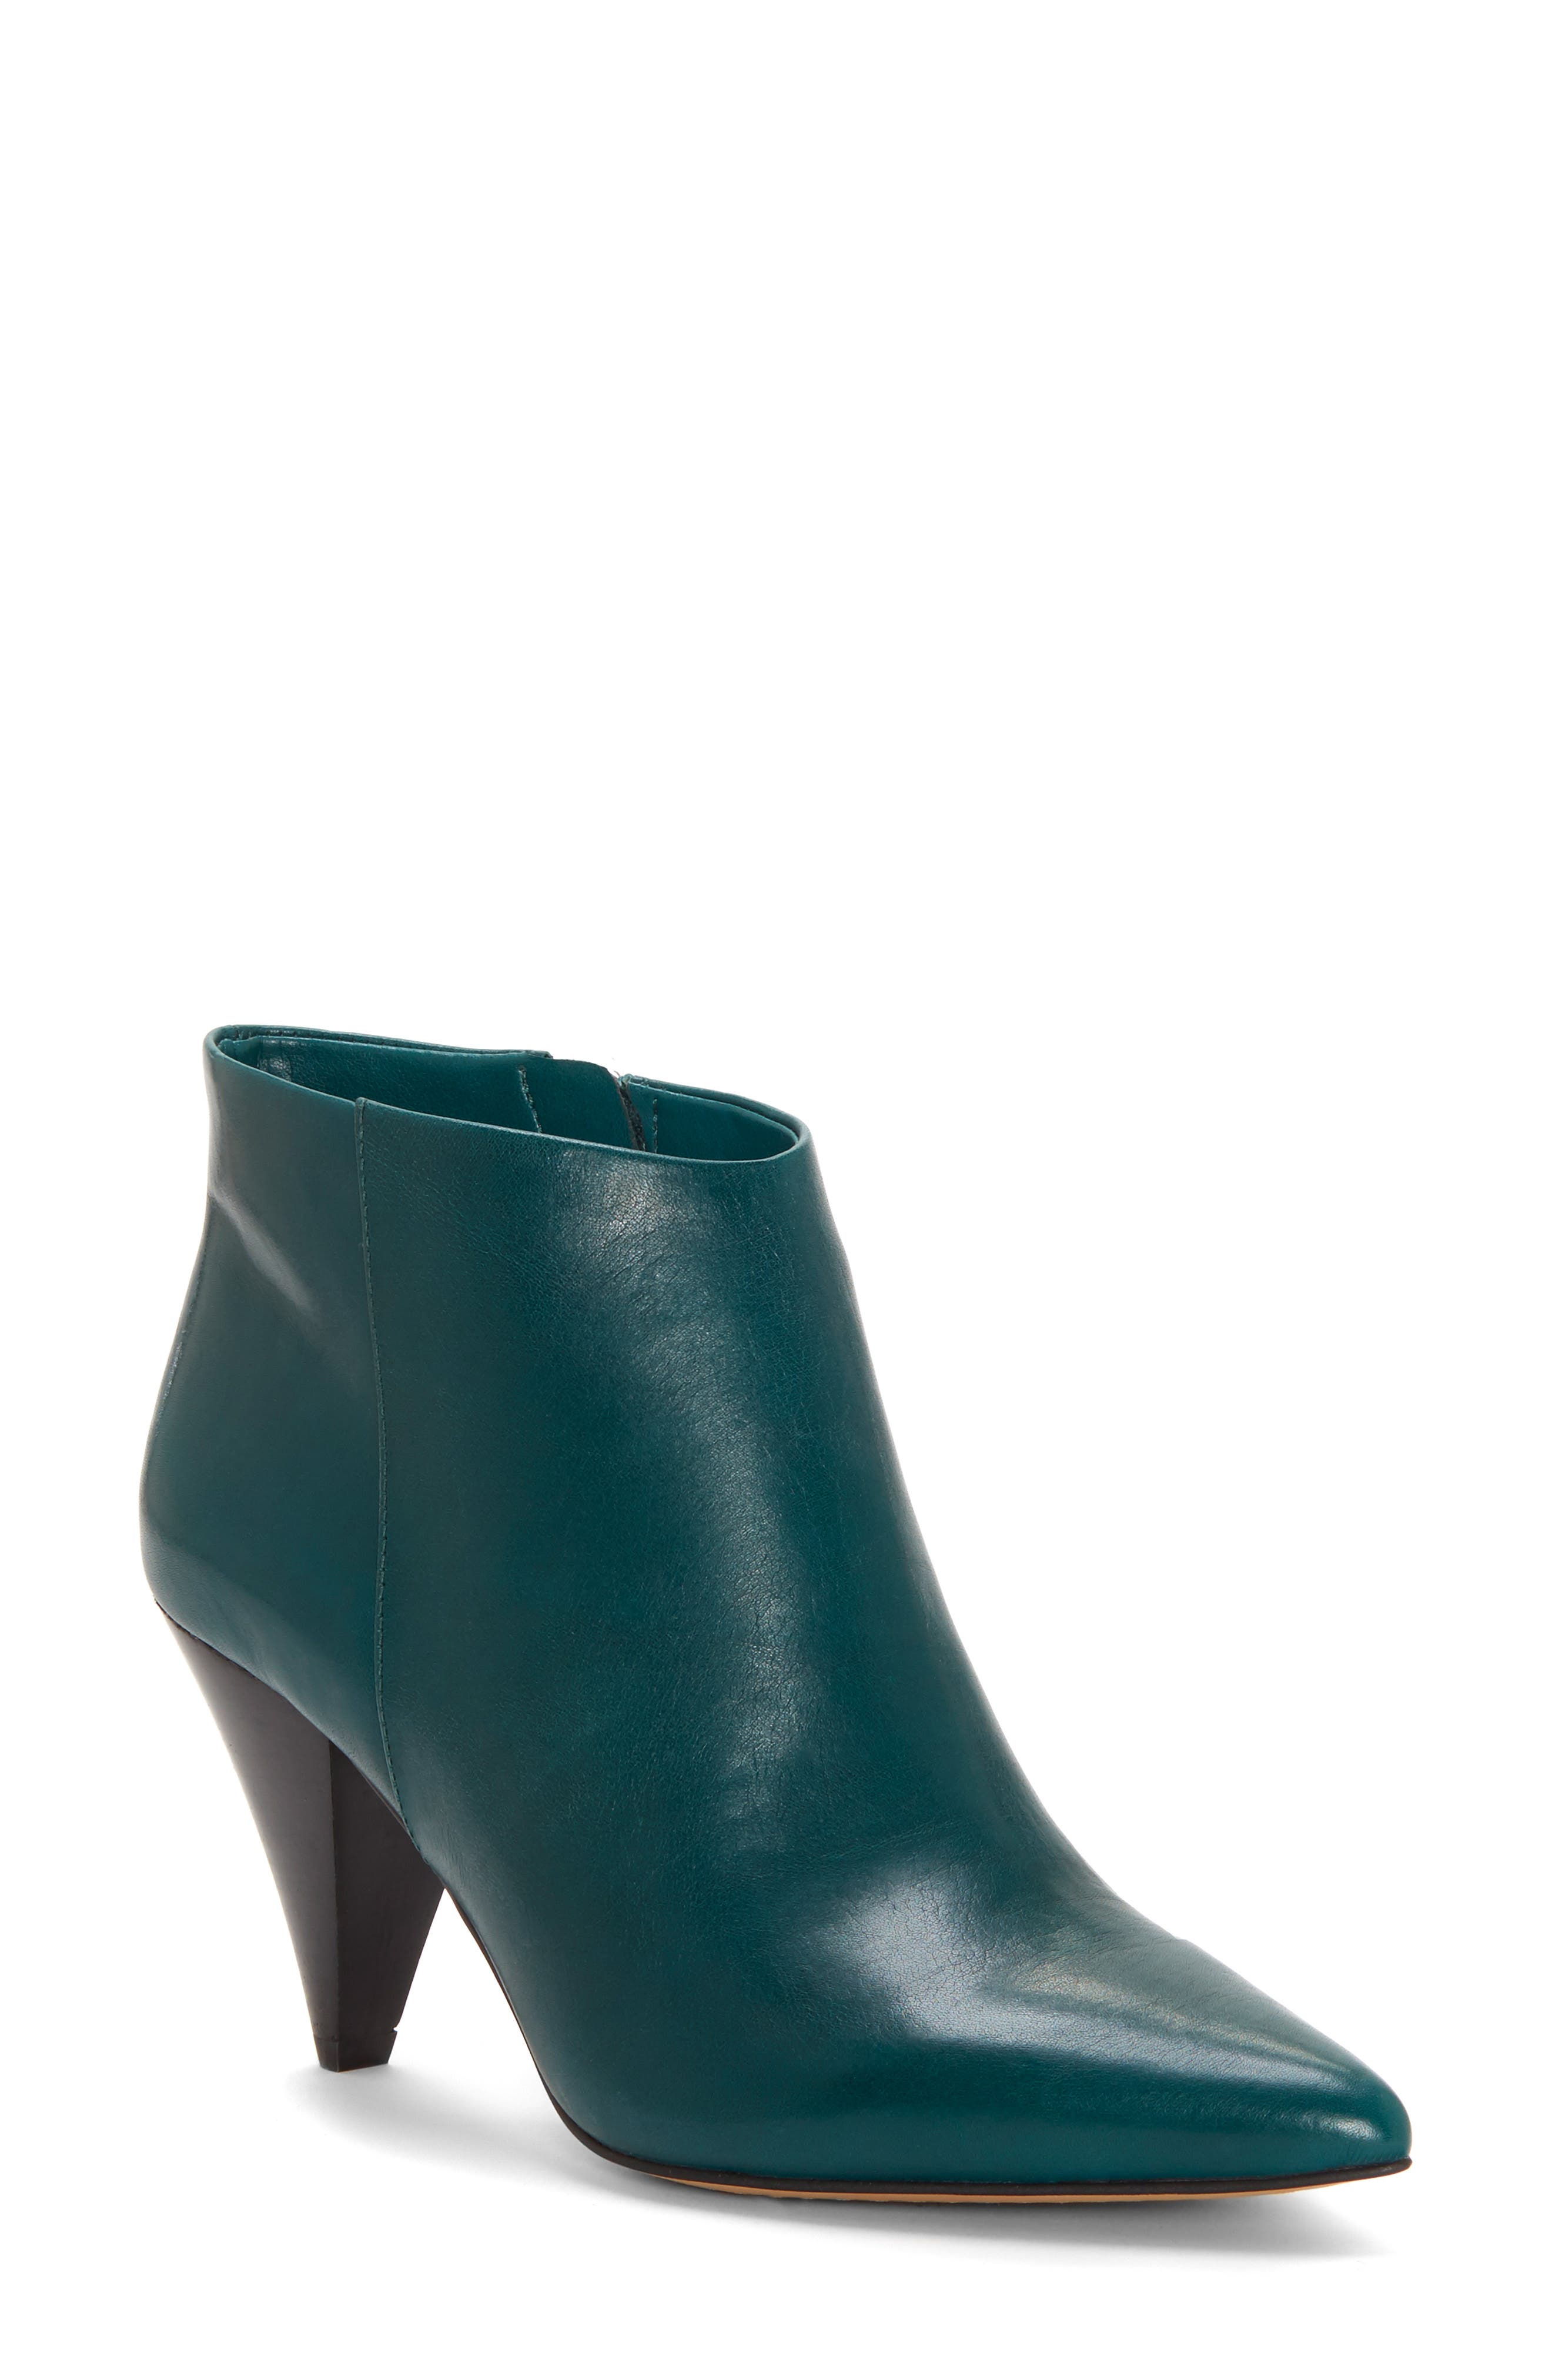 Vince Camuto Adriela Bootie, Green